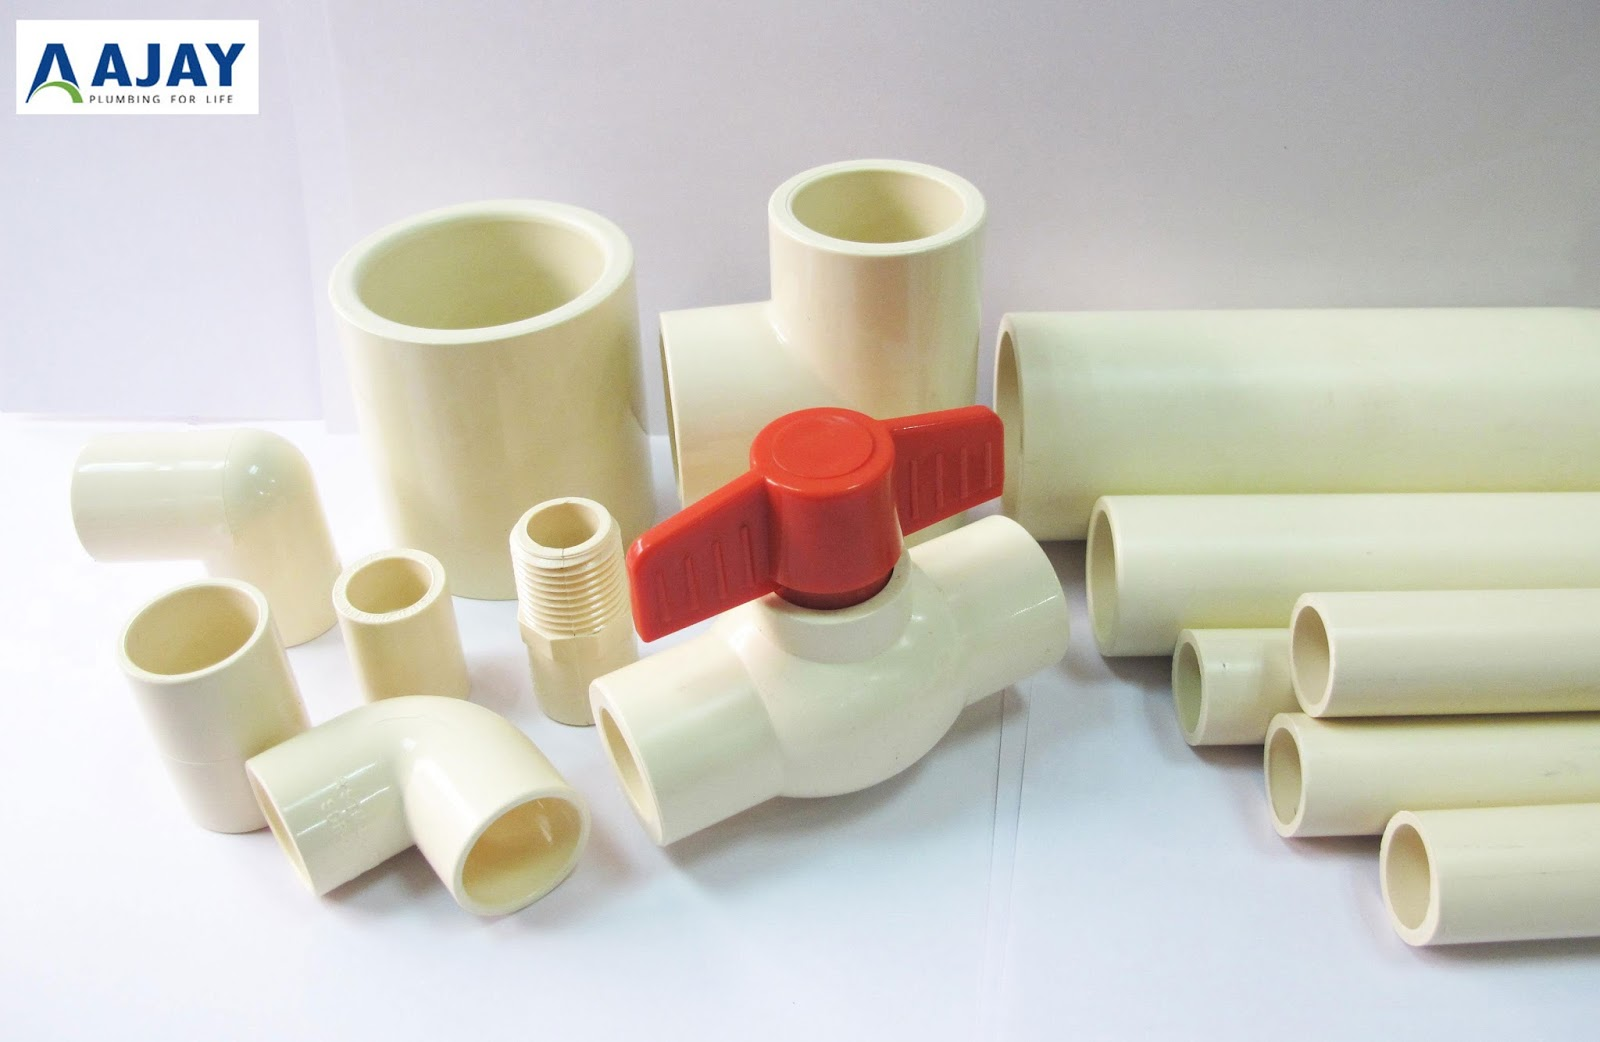 Cpvc pvc upvc plastic pipes fittings in india the for Water line pipe material